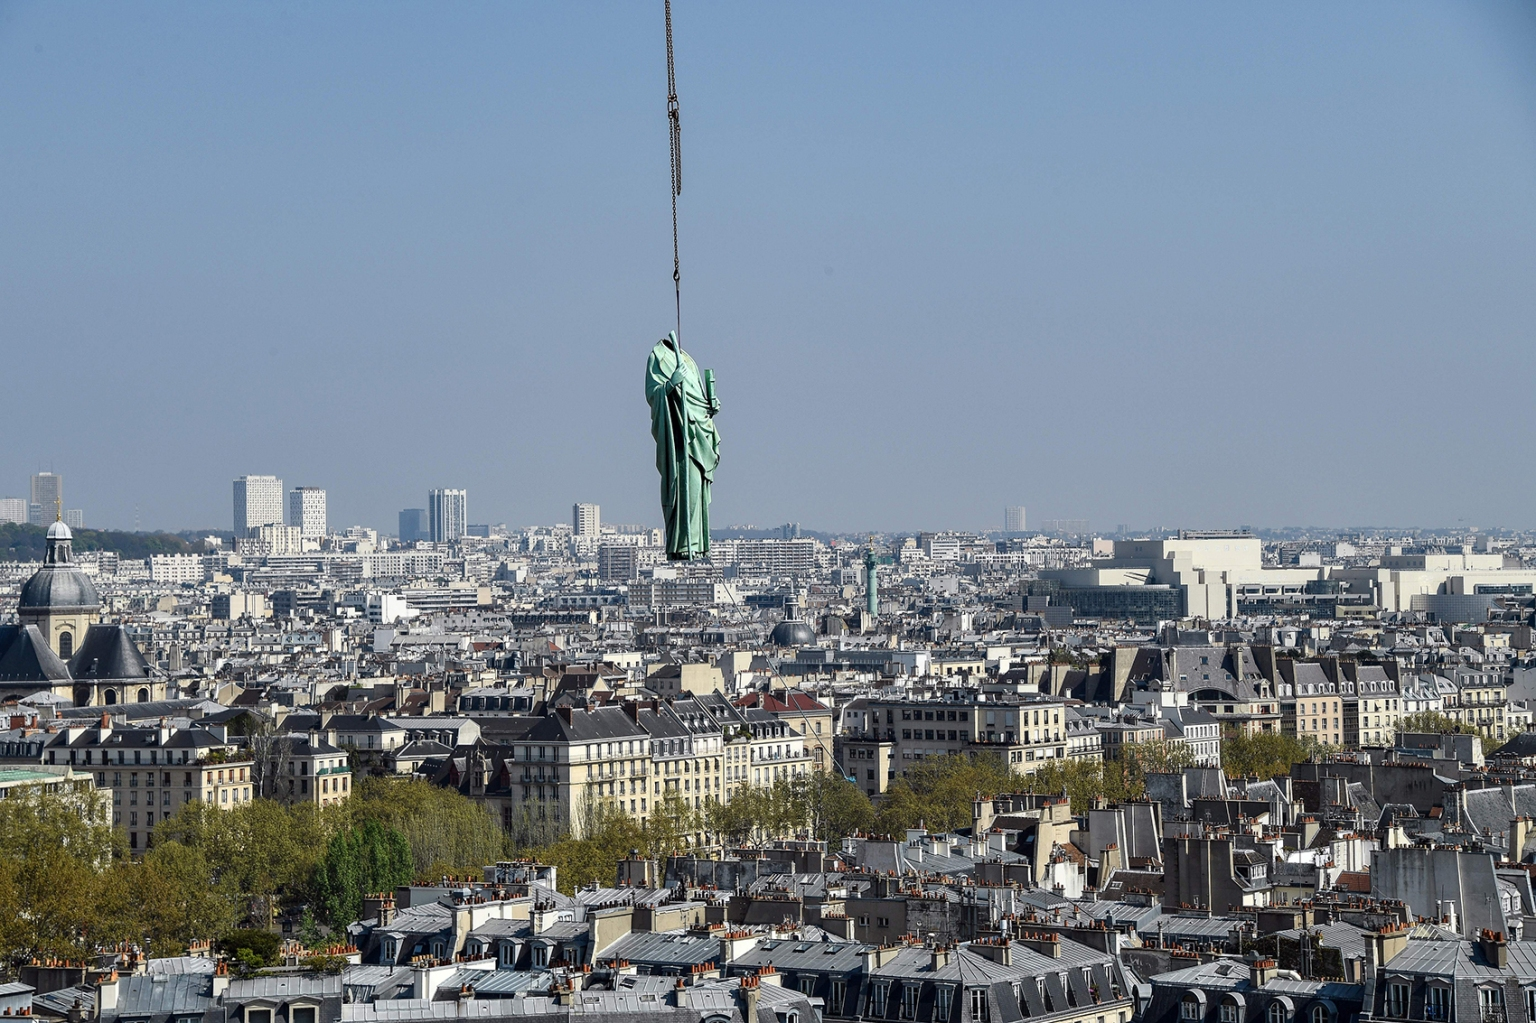 TOPSHOT - A crane lifts one of 16 copper statues, sitting 50 meters above the ground, off the Notre-Dame-de-Paris Cathedral to be taken for restoration on April 11, 2019 in the French capital Paris. - Using a 120 meter crane at the foot of the cathedral, the sixteen statues, the 12 apostles and the 4 evangelists, which sit around the spire of the cathedral are being removed to be sent to Perigueux, in southwest France for restoration. The absence of the statues will also signal the start of the renovation work of the spire that will last until 2022. Only then will the statues,  commisioned in the 1860s during the great restoration of the cathedral by Viollet-le-Duc, return to their original place. (Photo by BERTRAND GUAY / AFP)        (Photo credit should read BERTRAND GUAY/AFP/Getty Images)